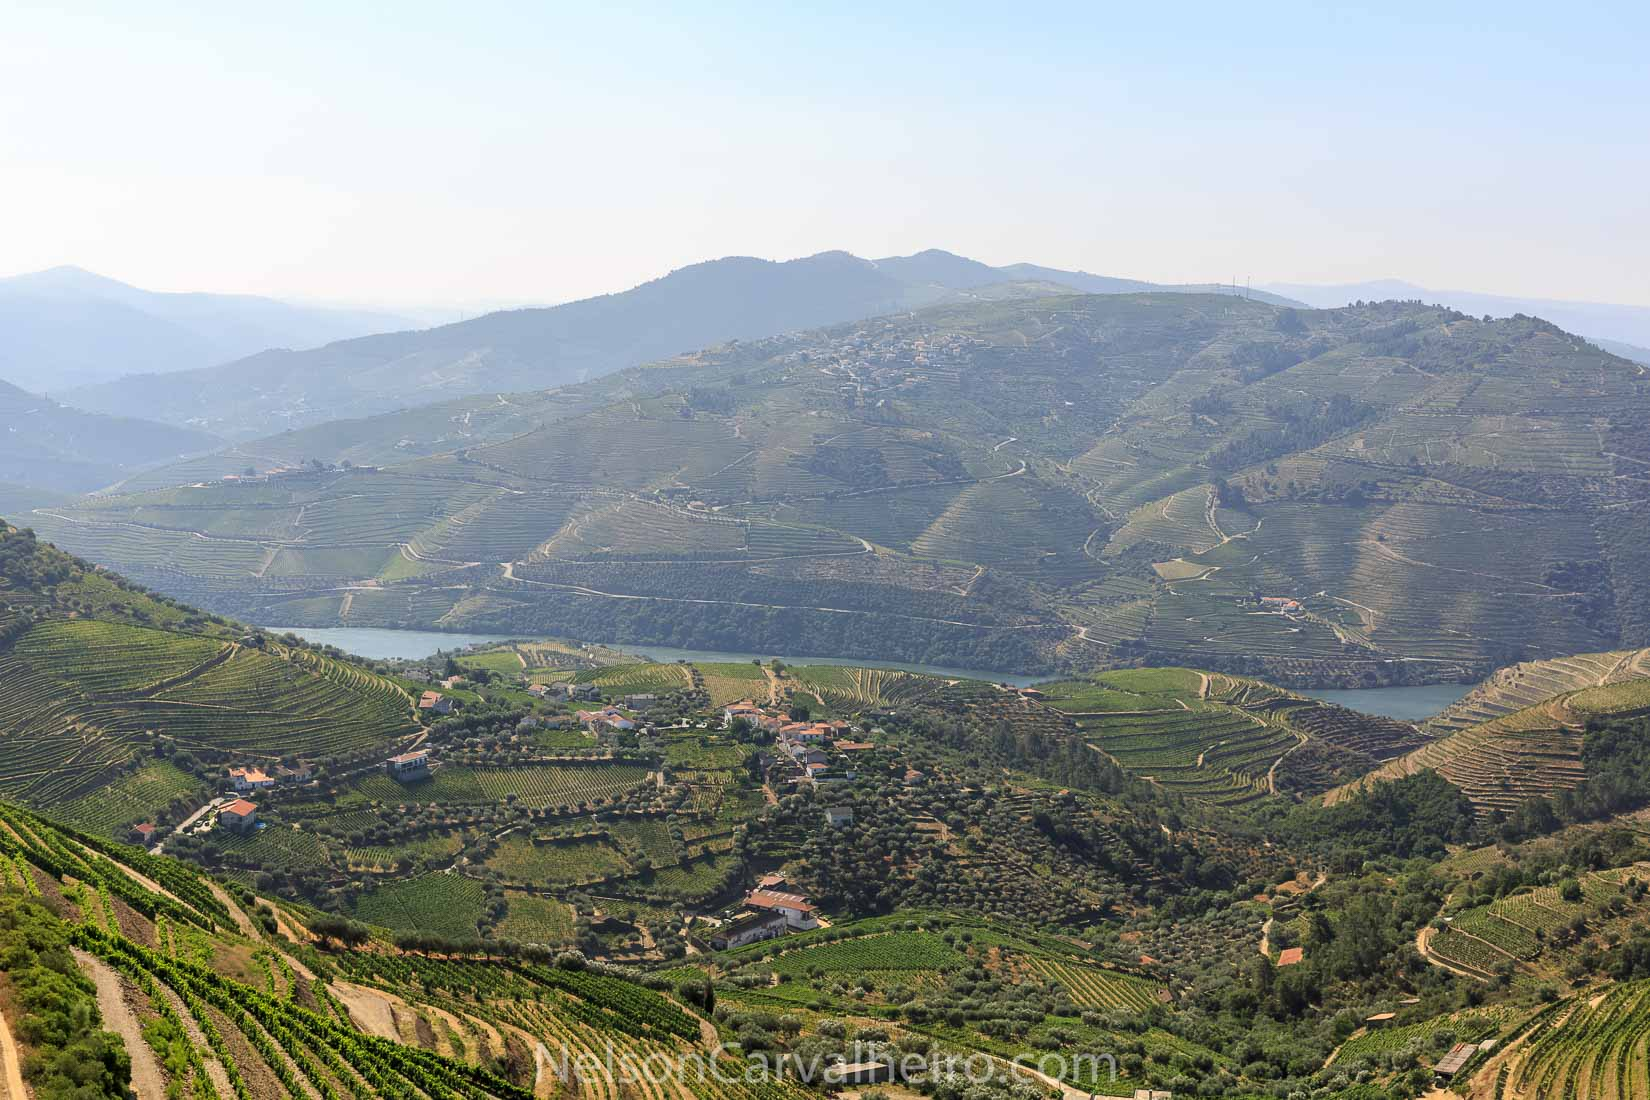 Douro Valley Landscape | Photo by: Nelson Carvalheiro